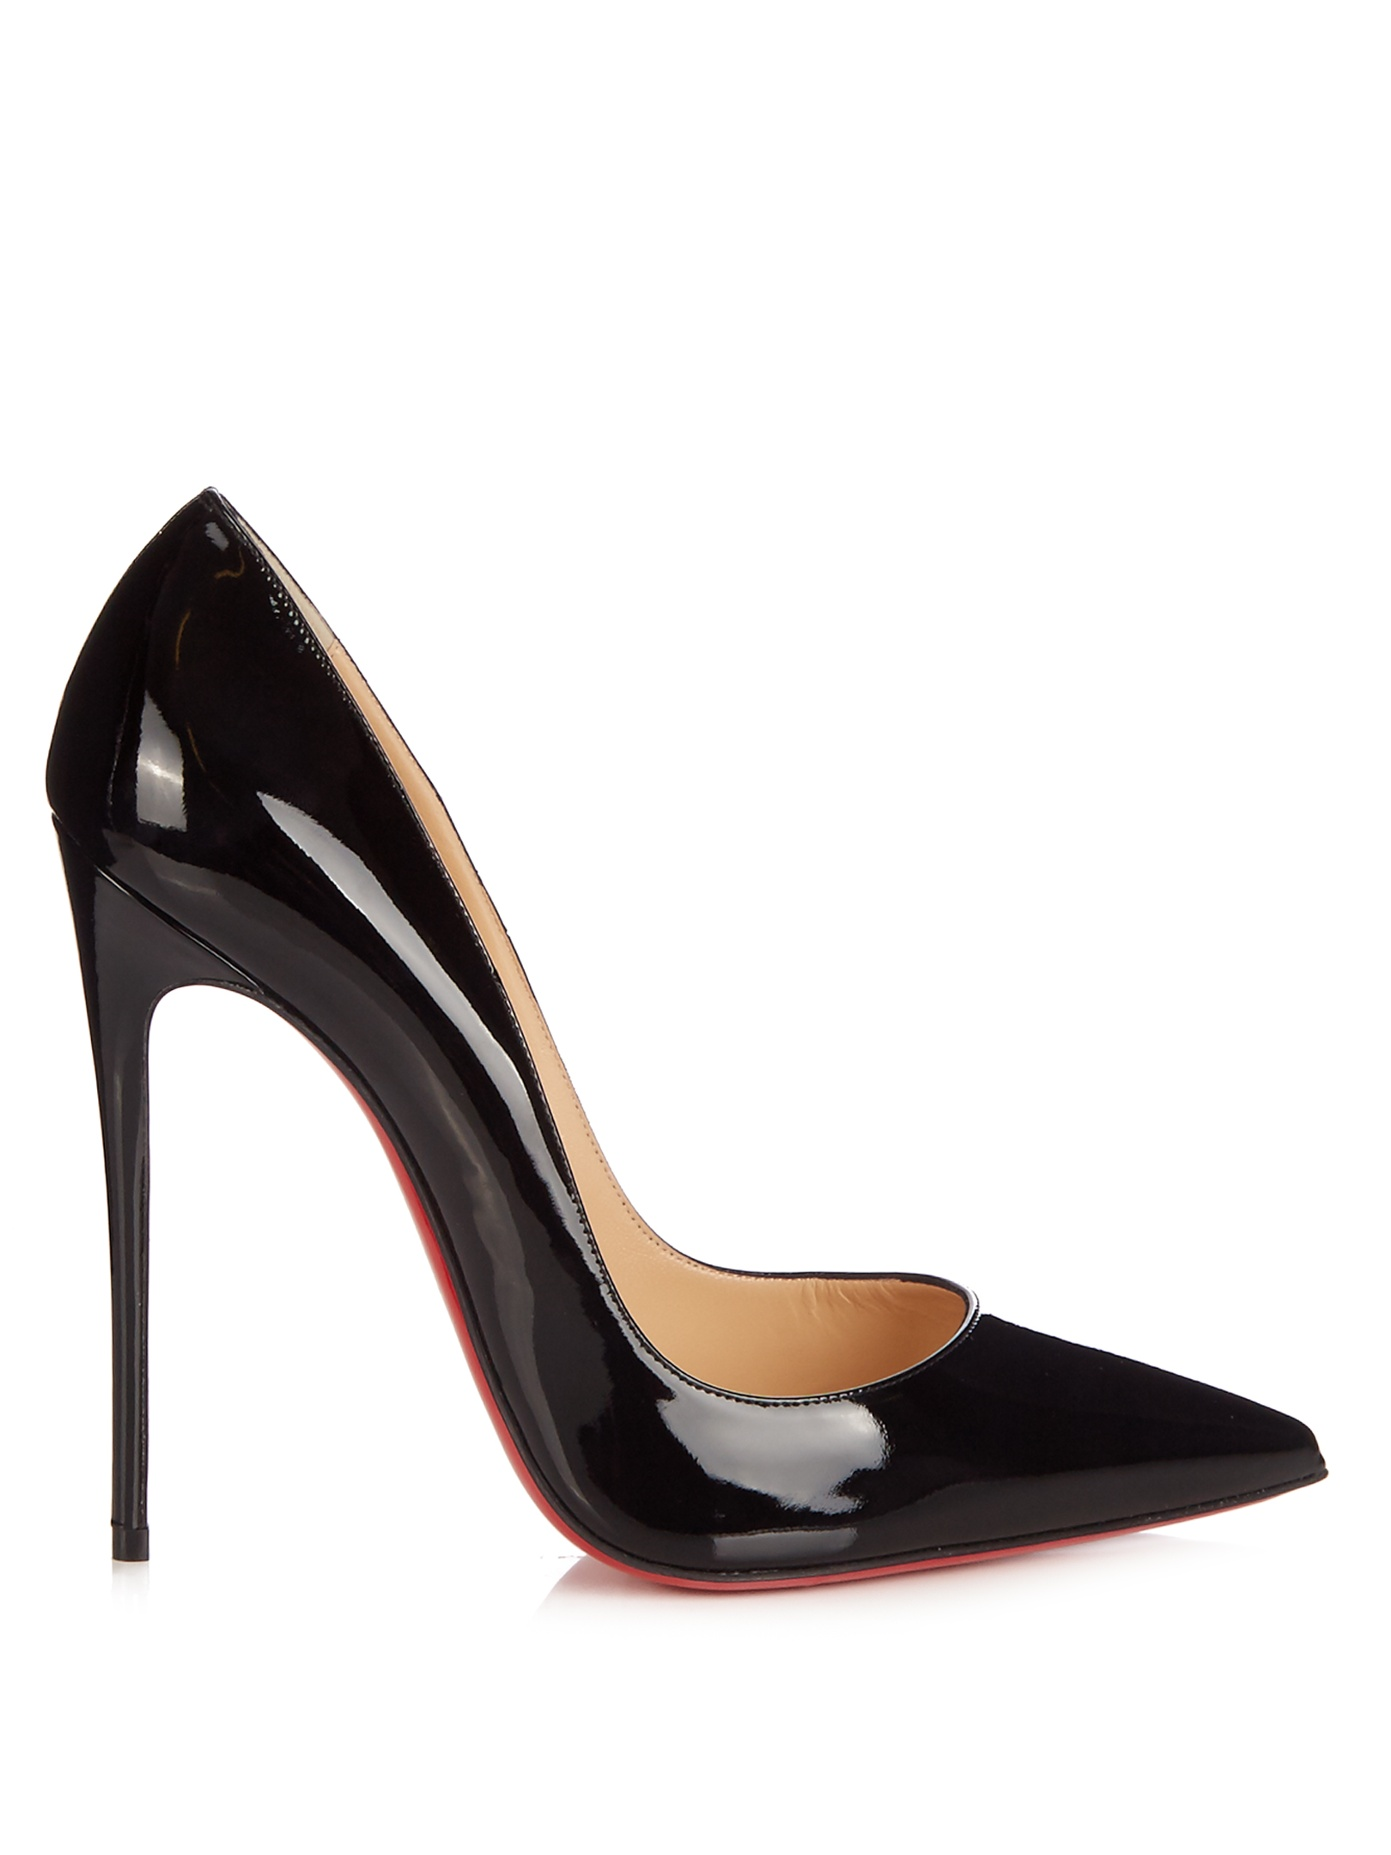 655bac545723 Christian Louboutin So Kate in Black - Meghan s Mirror